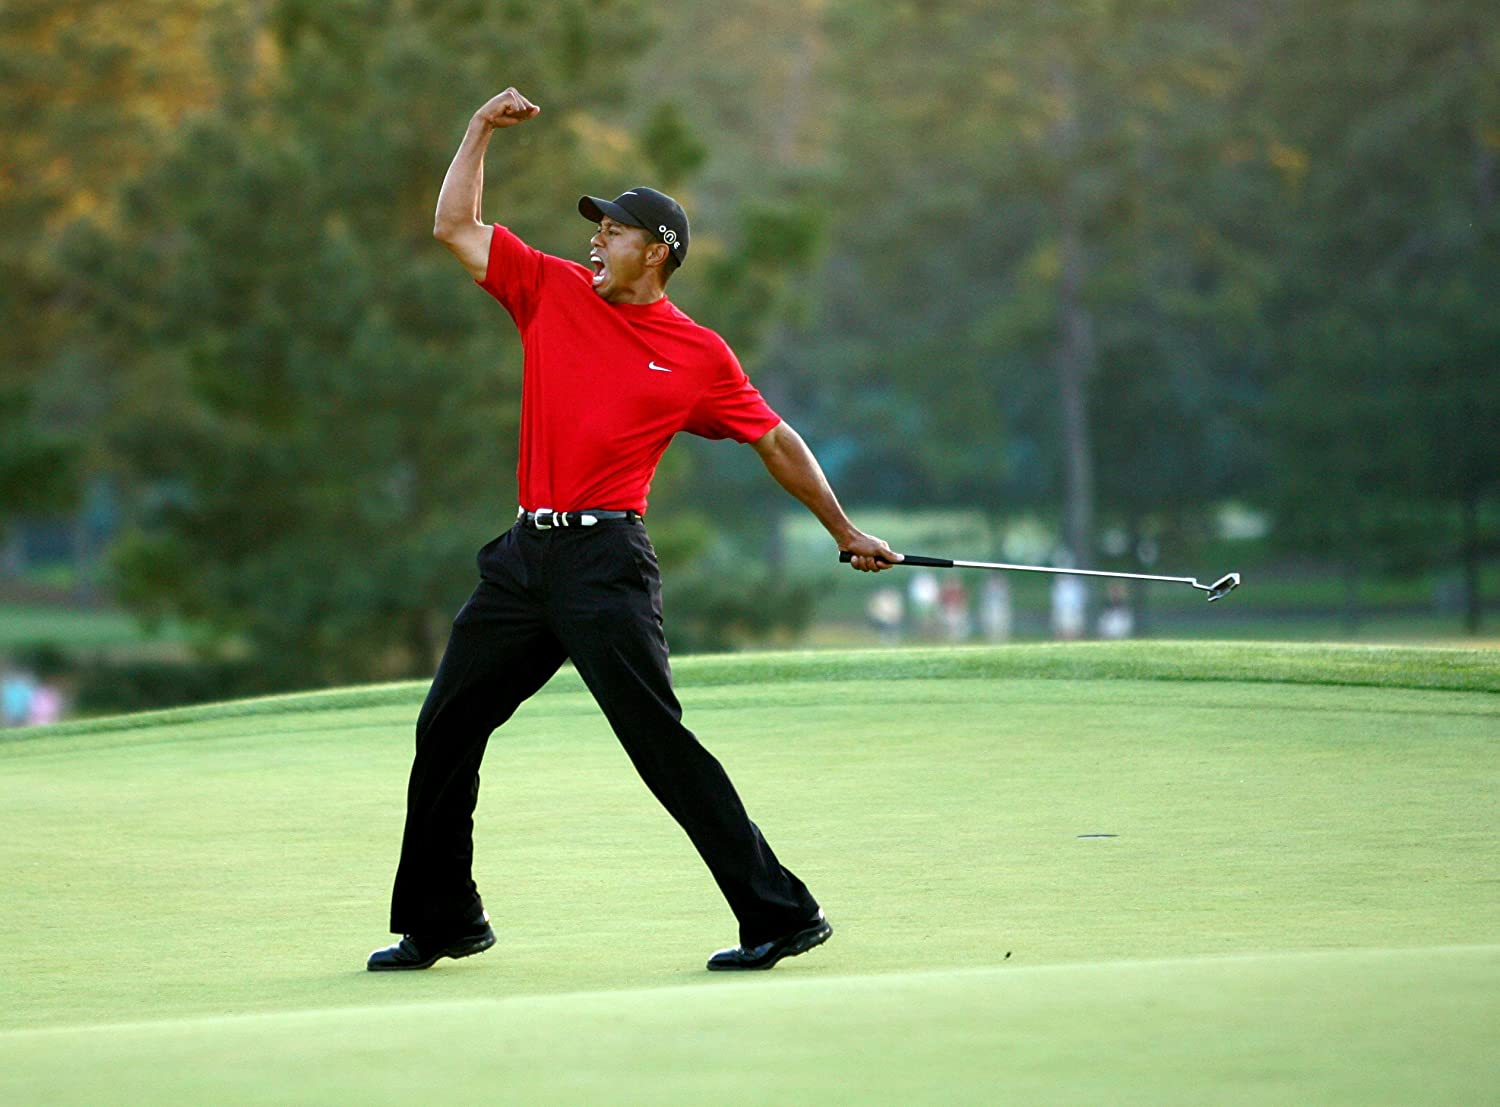 Tiger Woods Poster Photo Limited Print Celebrity Golf PGA Champion Sexy  Size 8.5